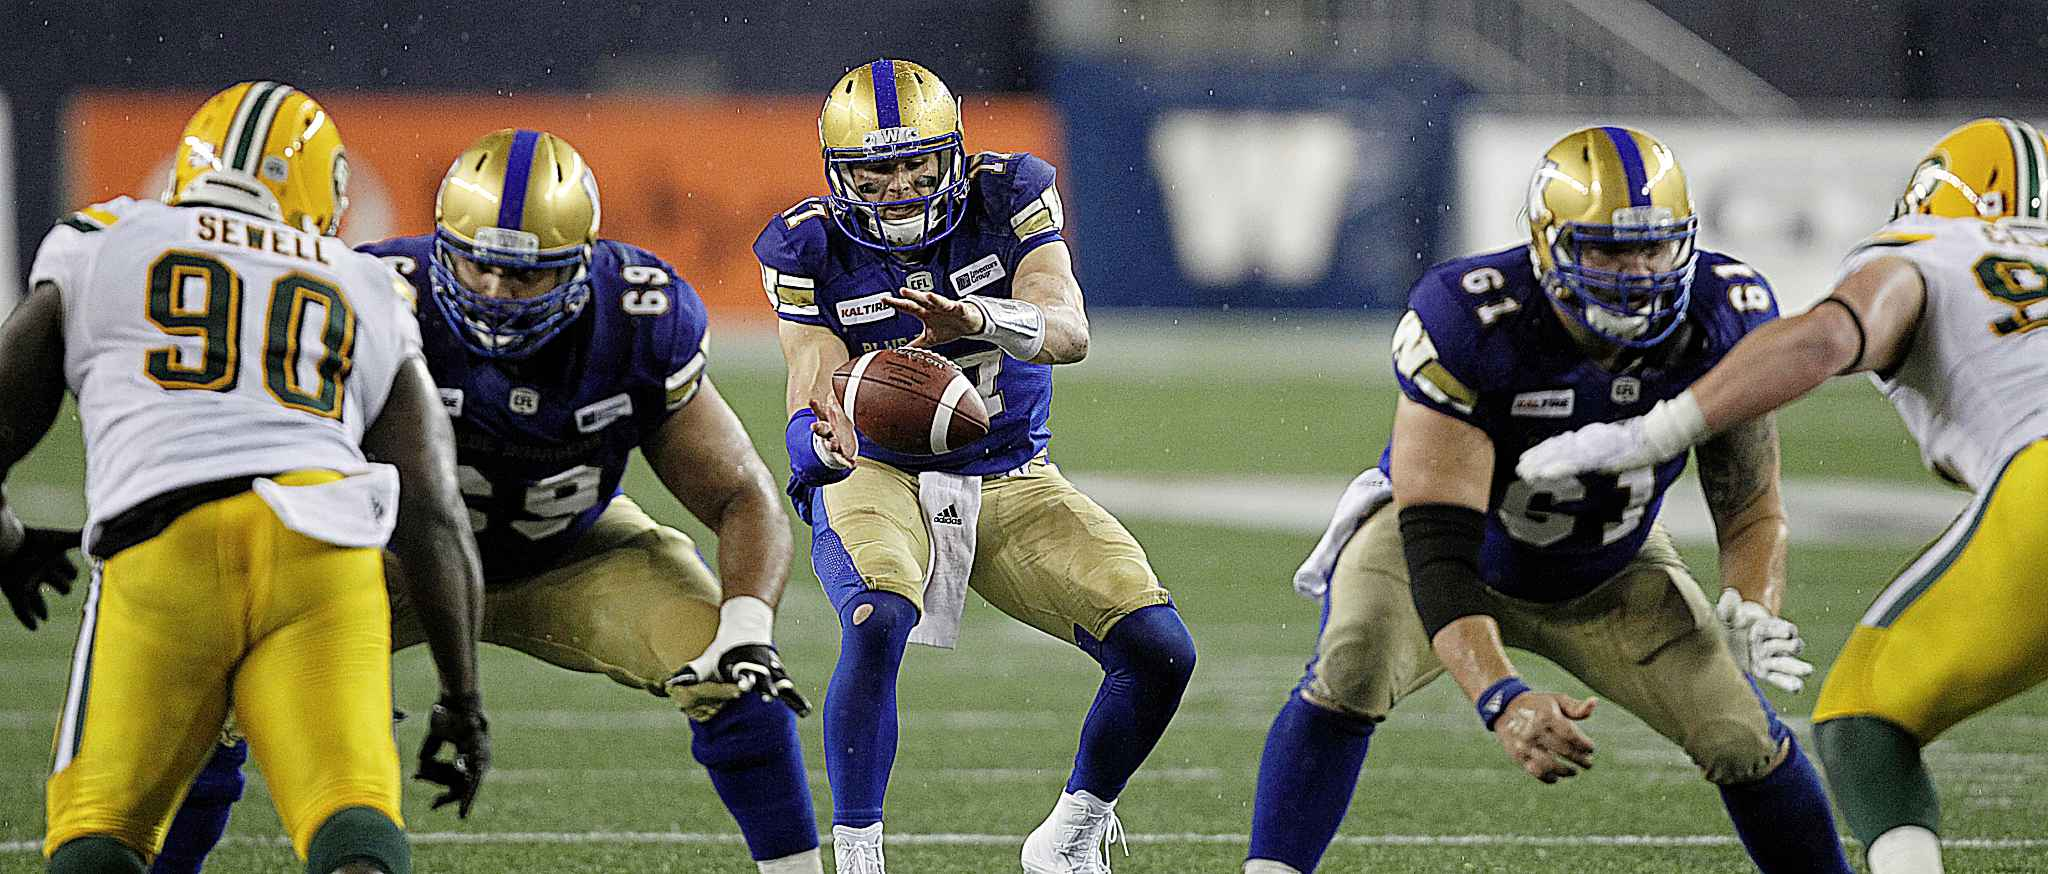 PHIL HOSSACK / WINNIPEG FREE PRESS - Winnipeg Blue Bomber QB #17 Chris Streveler takes the snap in the 2nd quarter when play resumed after a weather delay Thursday at Investor's Group Field. Play was called due to weather again before the quarter ended.  - June 14, 2018